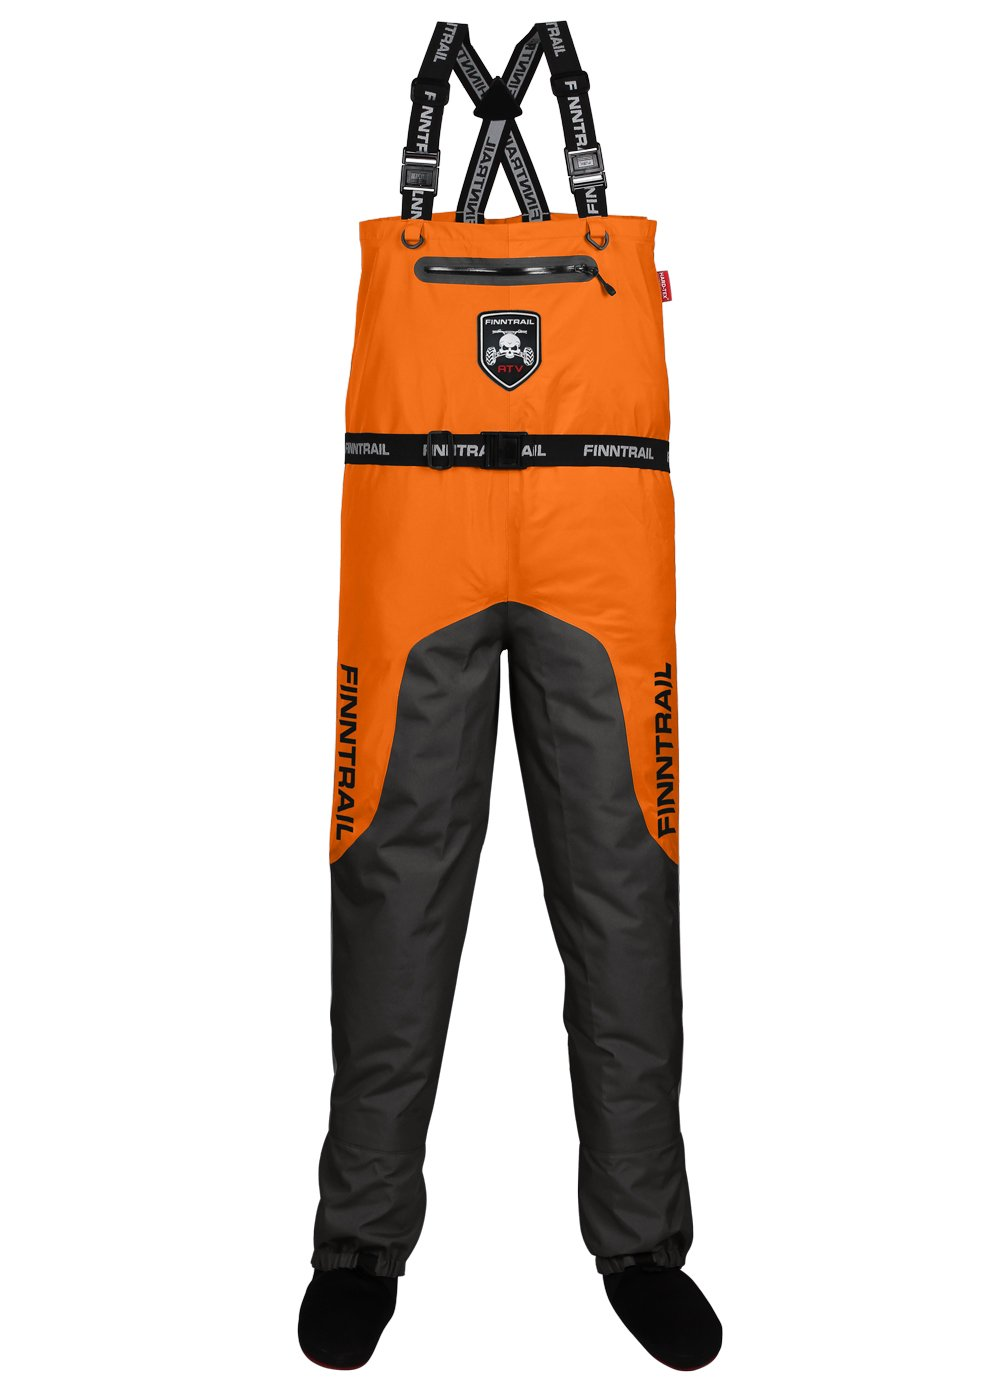 Вейдерсы Finntrail Aquamaster 1526 Orange, размер XS